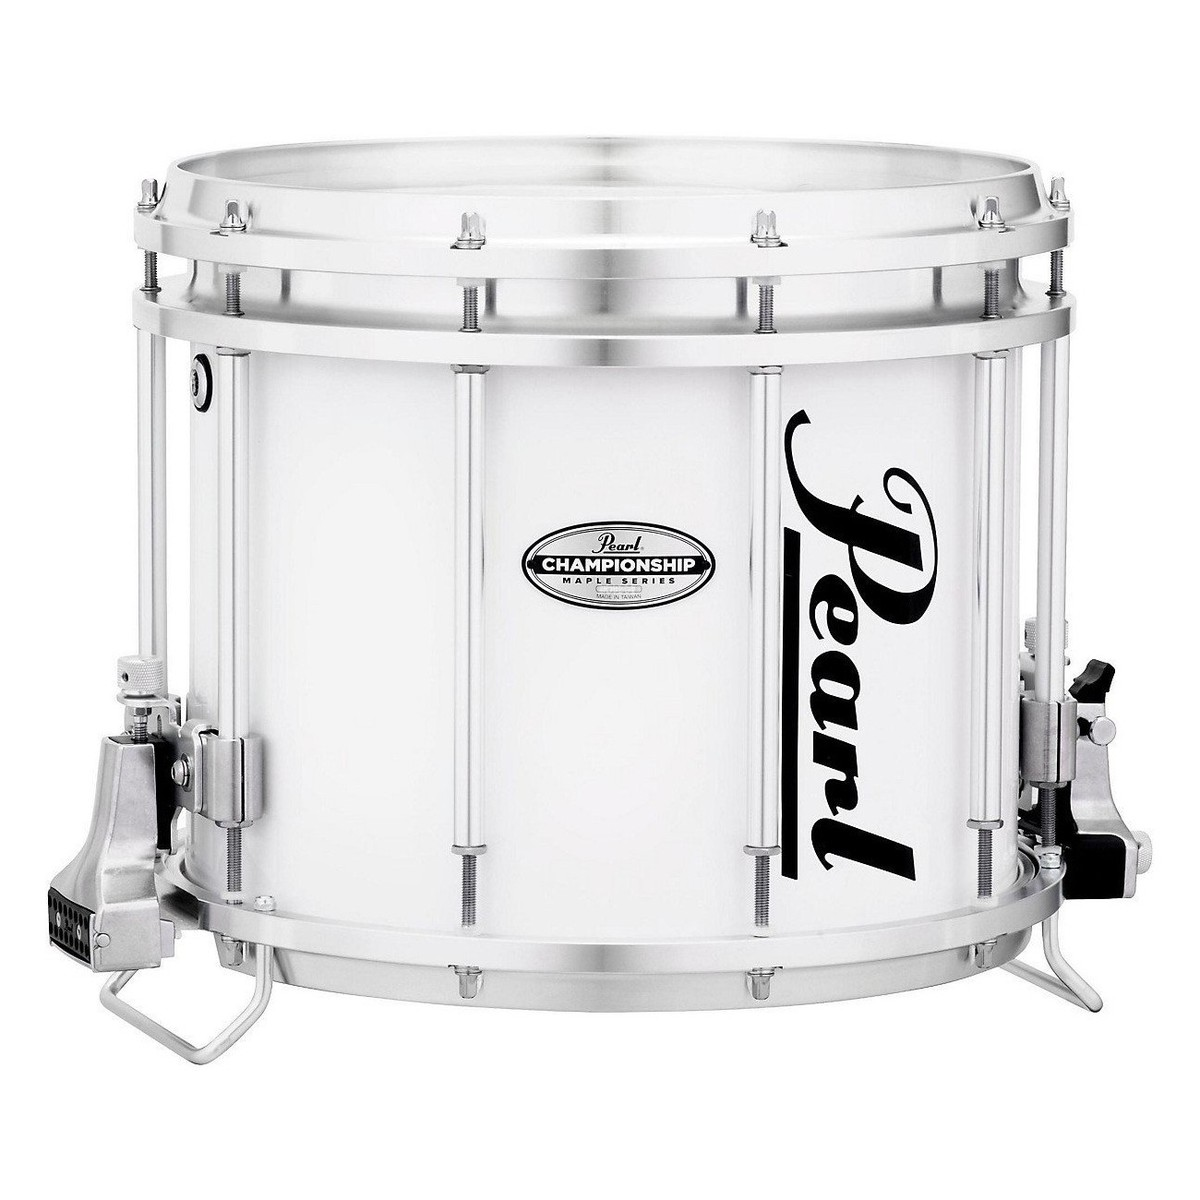 pearl championship maple 14 39 39 x 12 39 39 marching snare drum pure white at gear4music. Black Bedroom Furniture Sets. Home Design Ideas